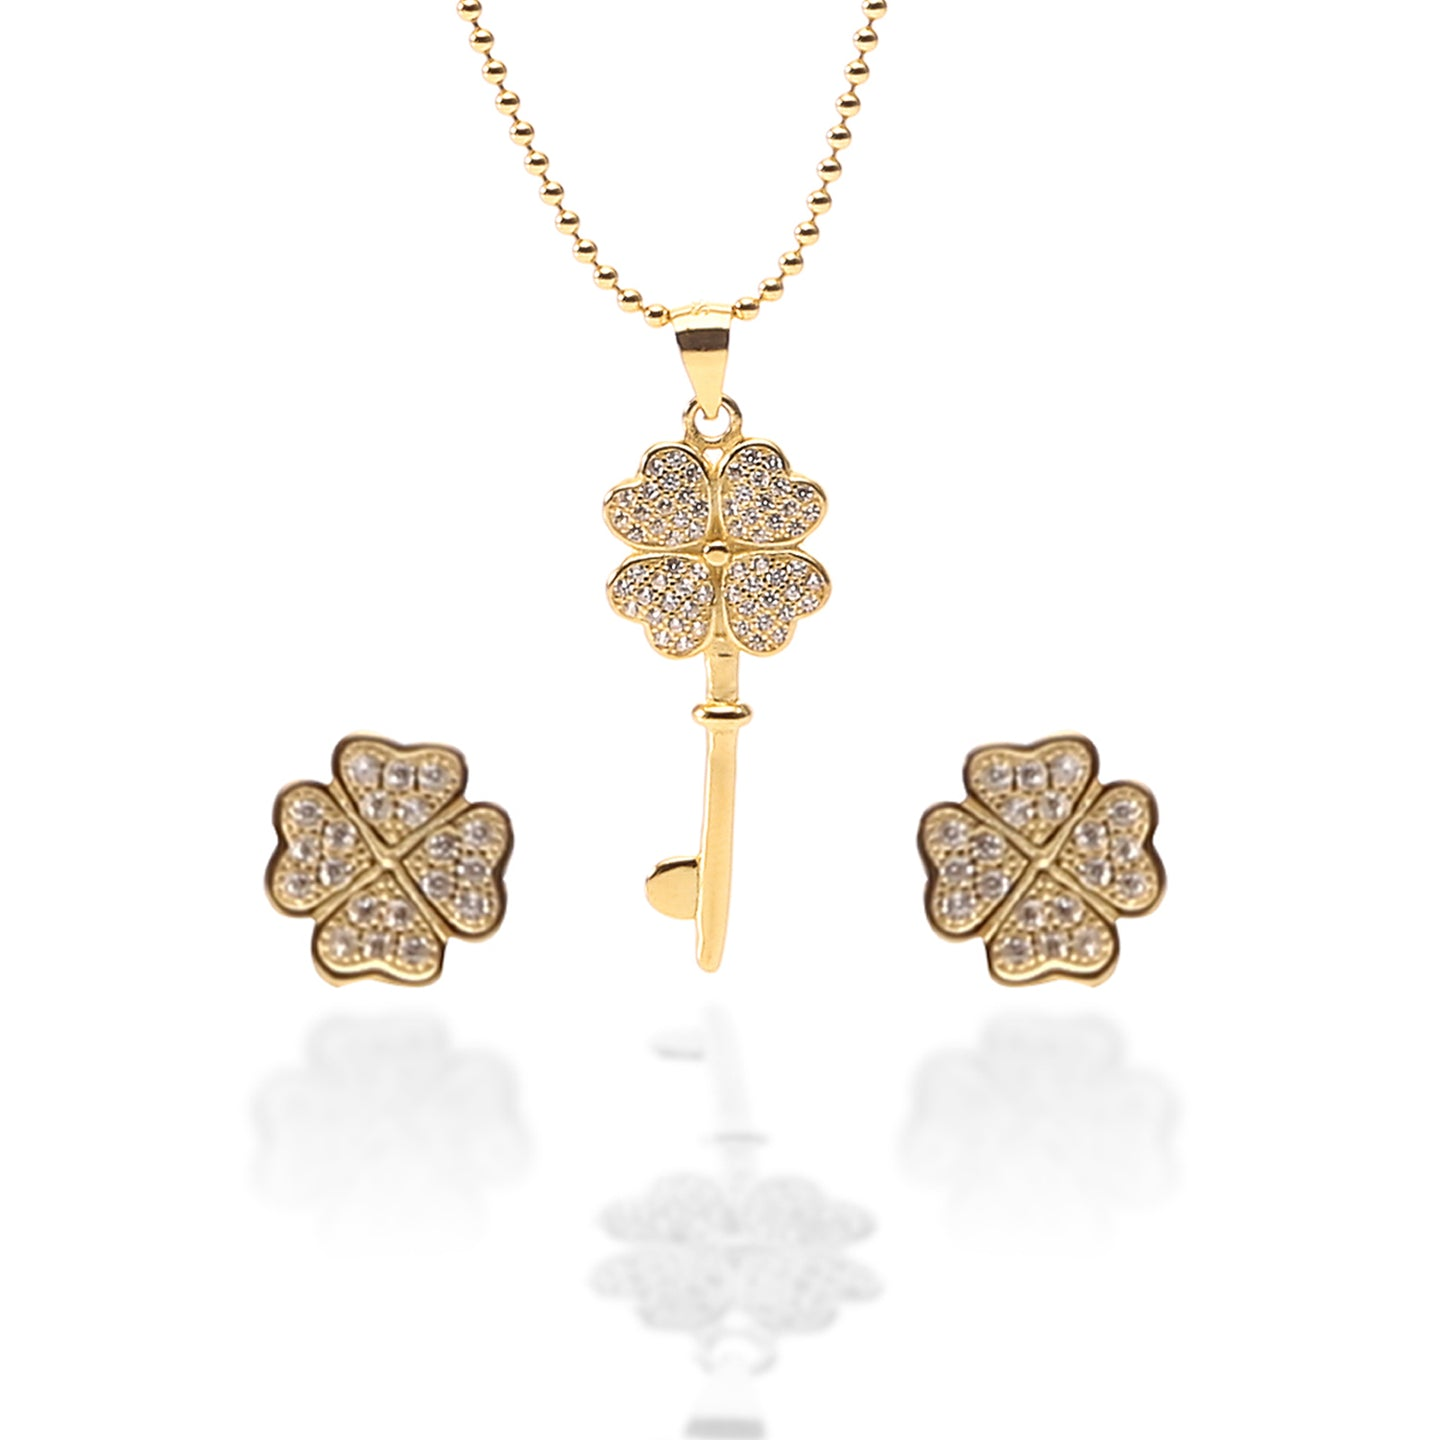 Key To My Heart Pendant Necklace and Earrings Set - ARJW1012GD - ARCADIO LIFESTYLE